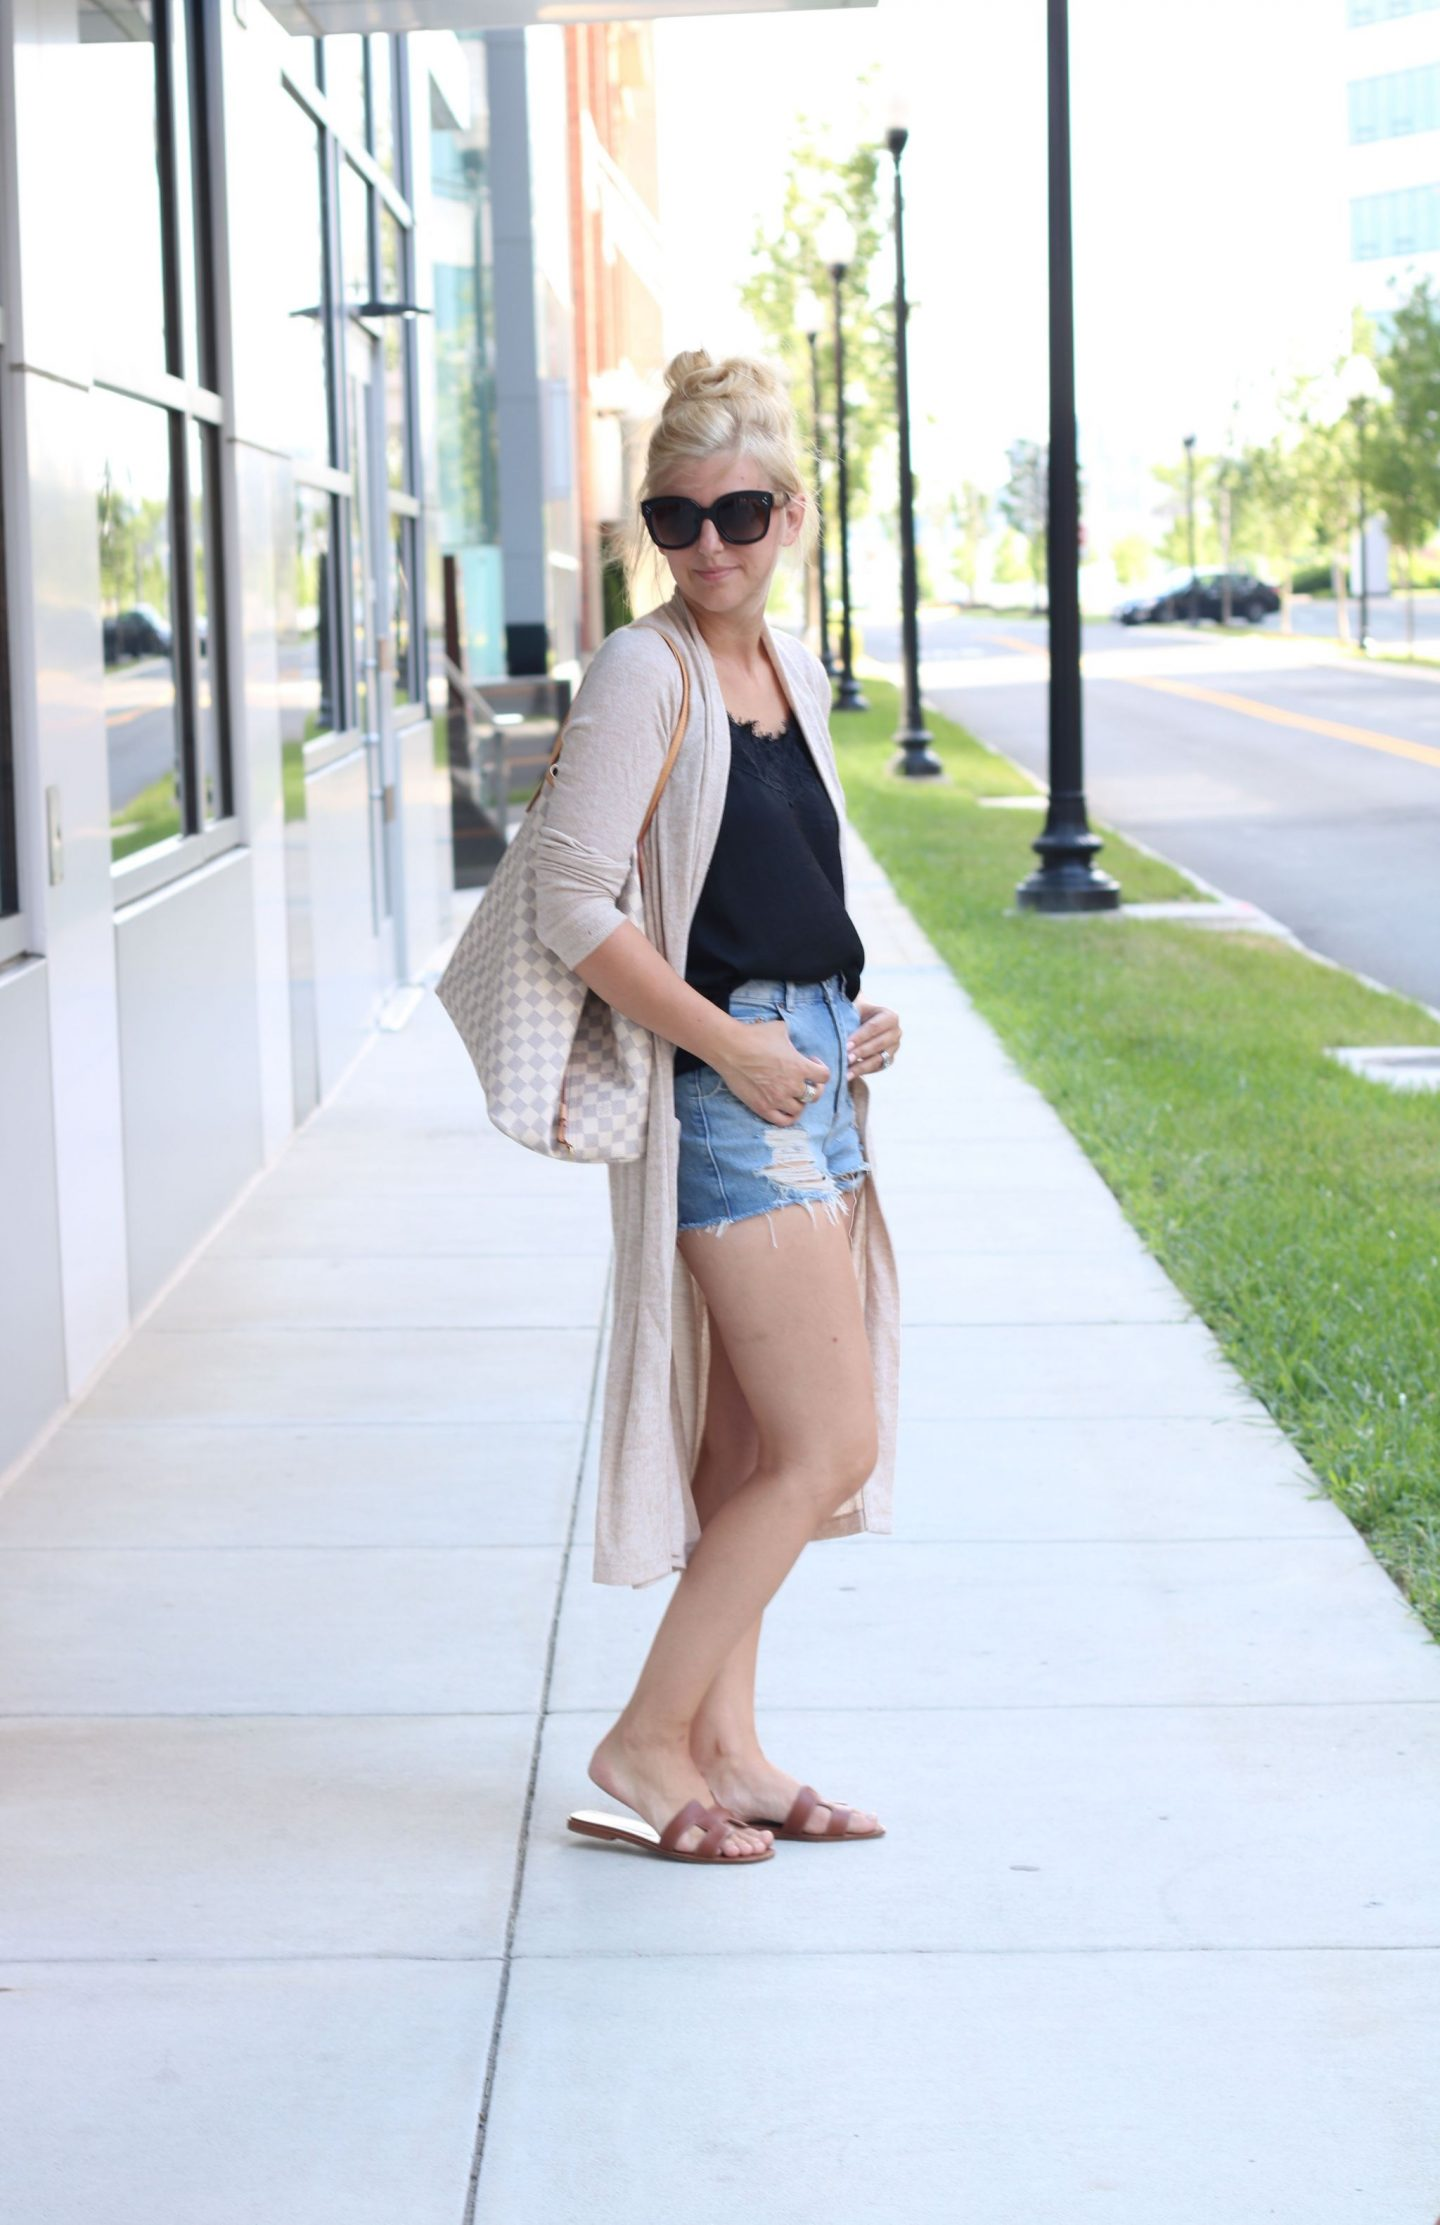 topshop distressed denim shorts, abercrombie long cardigan, celine sunglasses, top bun